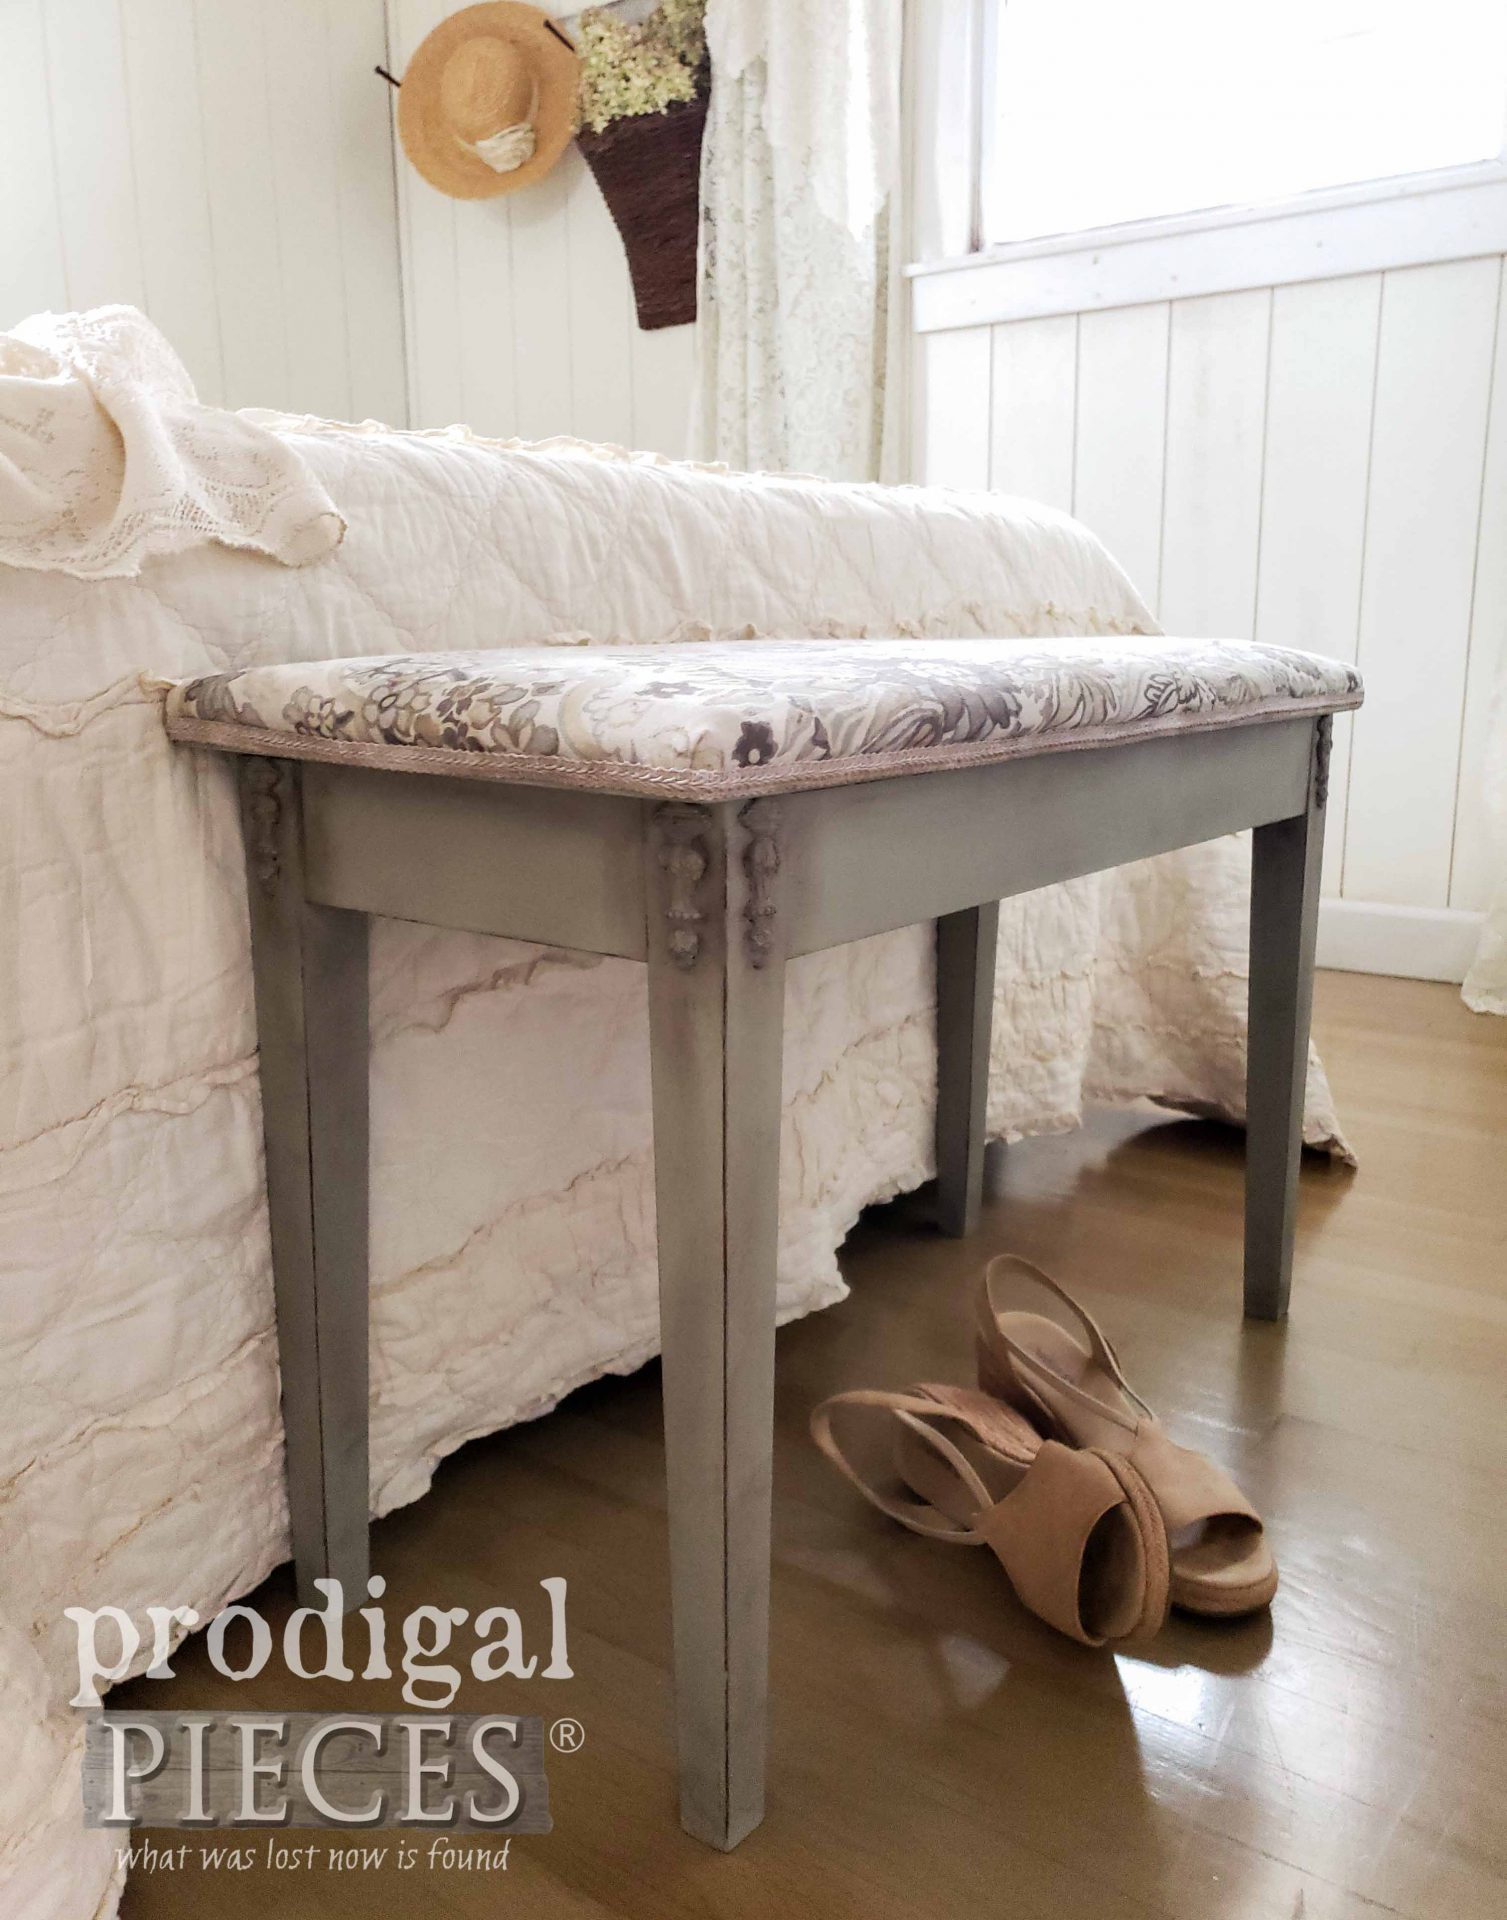 Upholstered Piano Bench Makeover by Larissa of Prodigal Pieces | prodigalpieces.com #prodigalpieces #upholstery #furniture #home #homedecor #bedroom #farmhouse